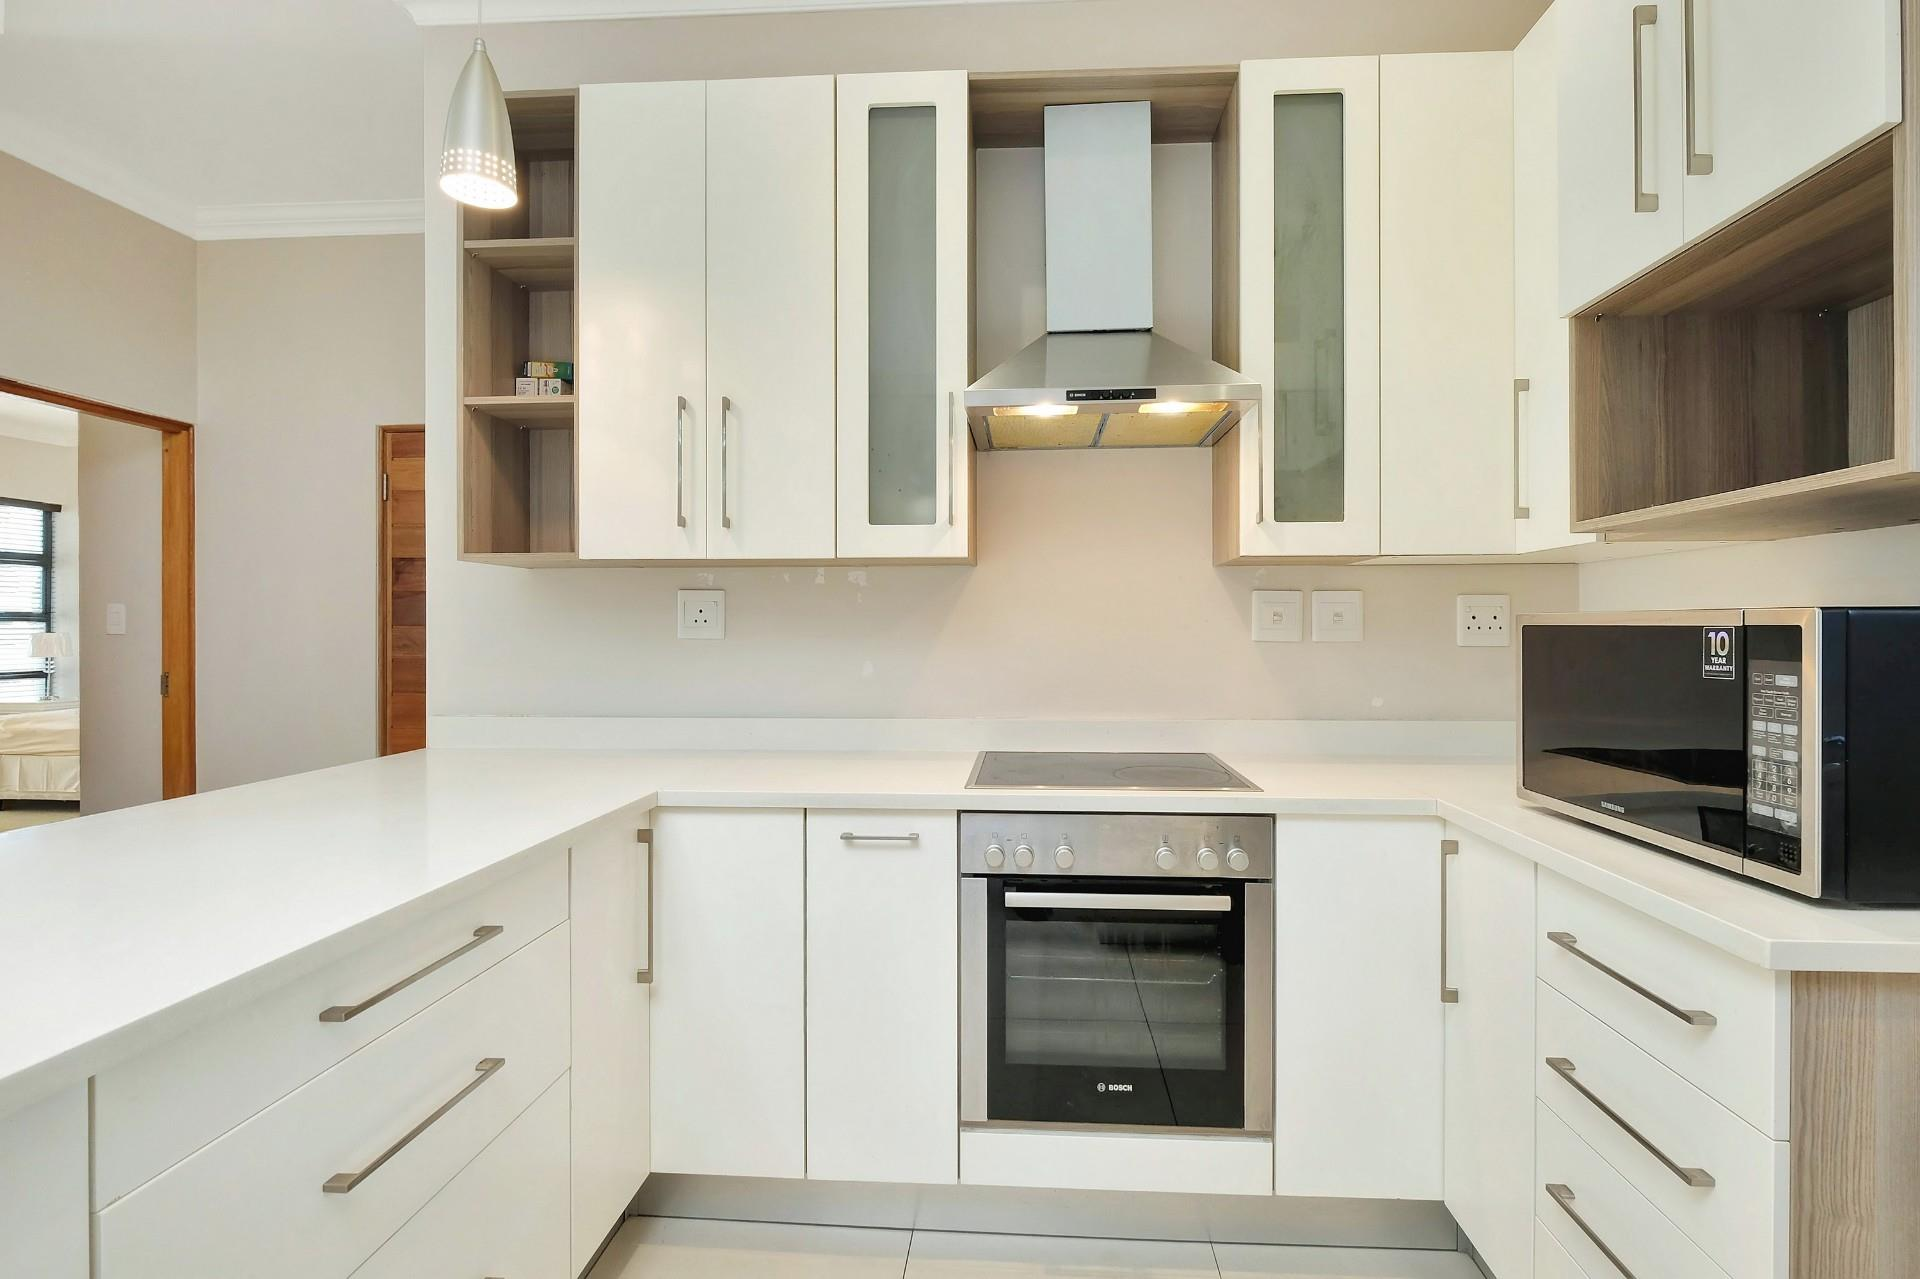 3 Bedroom Apartment For Sale in Morningside